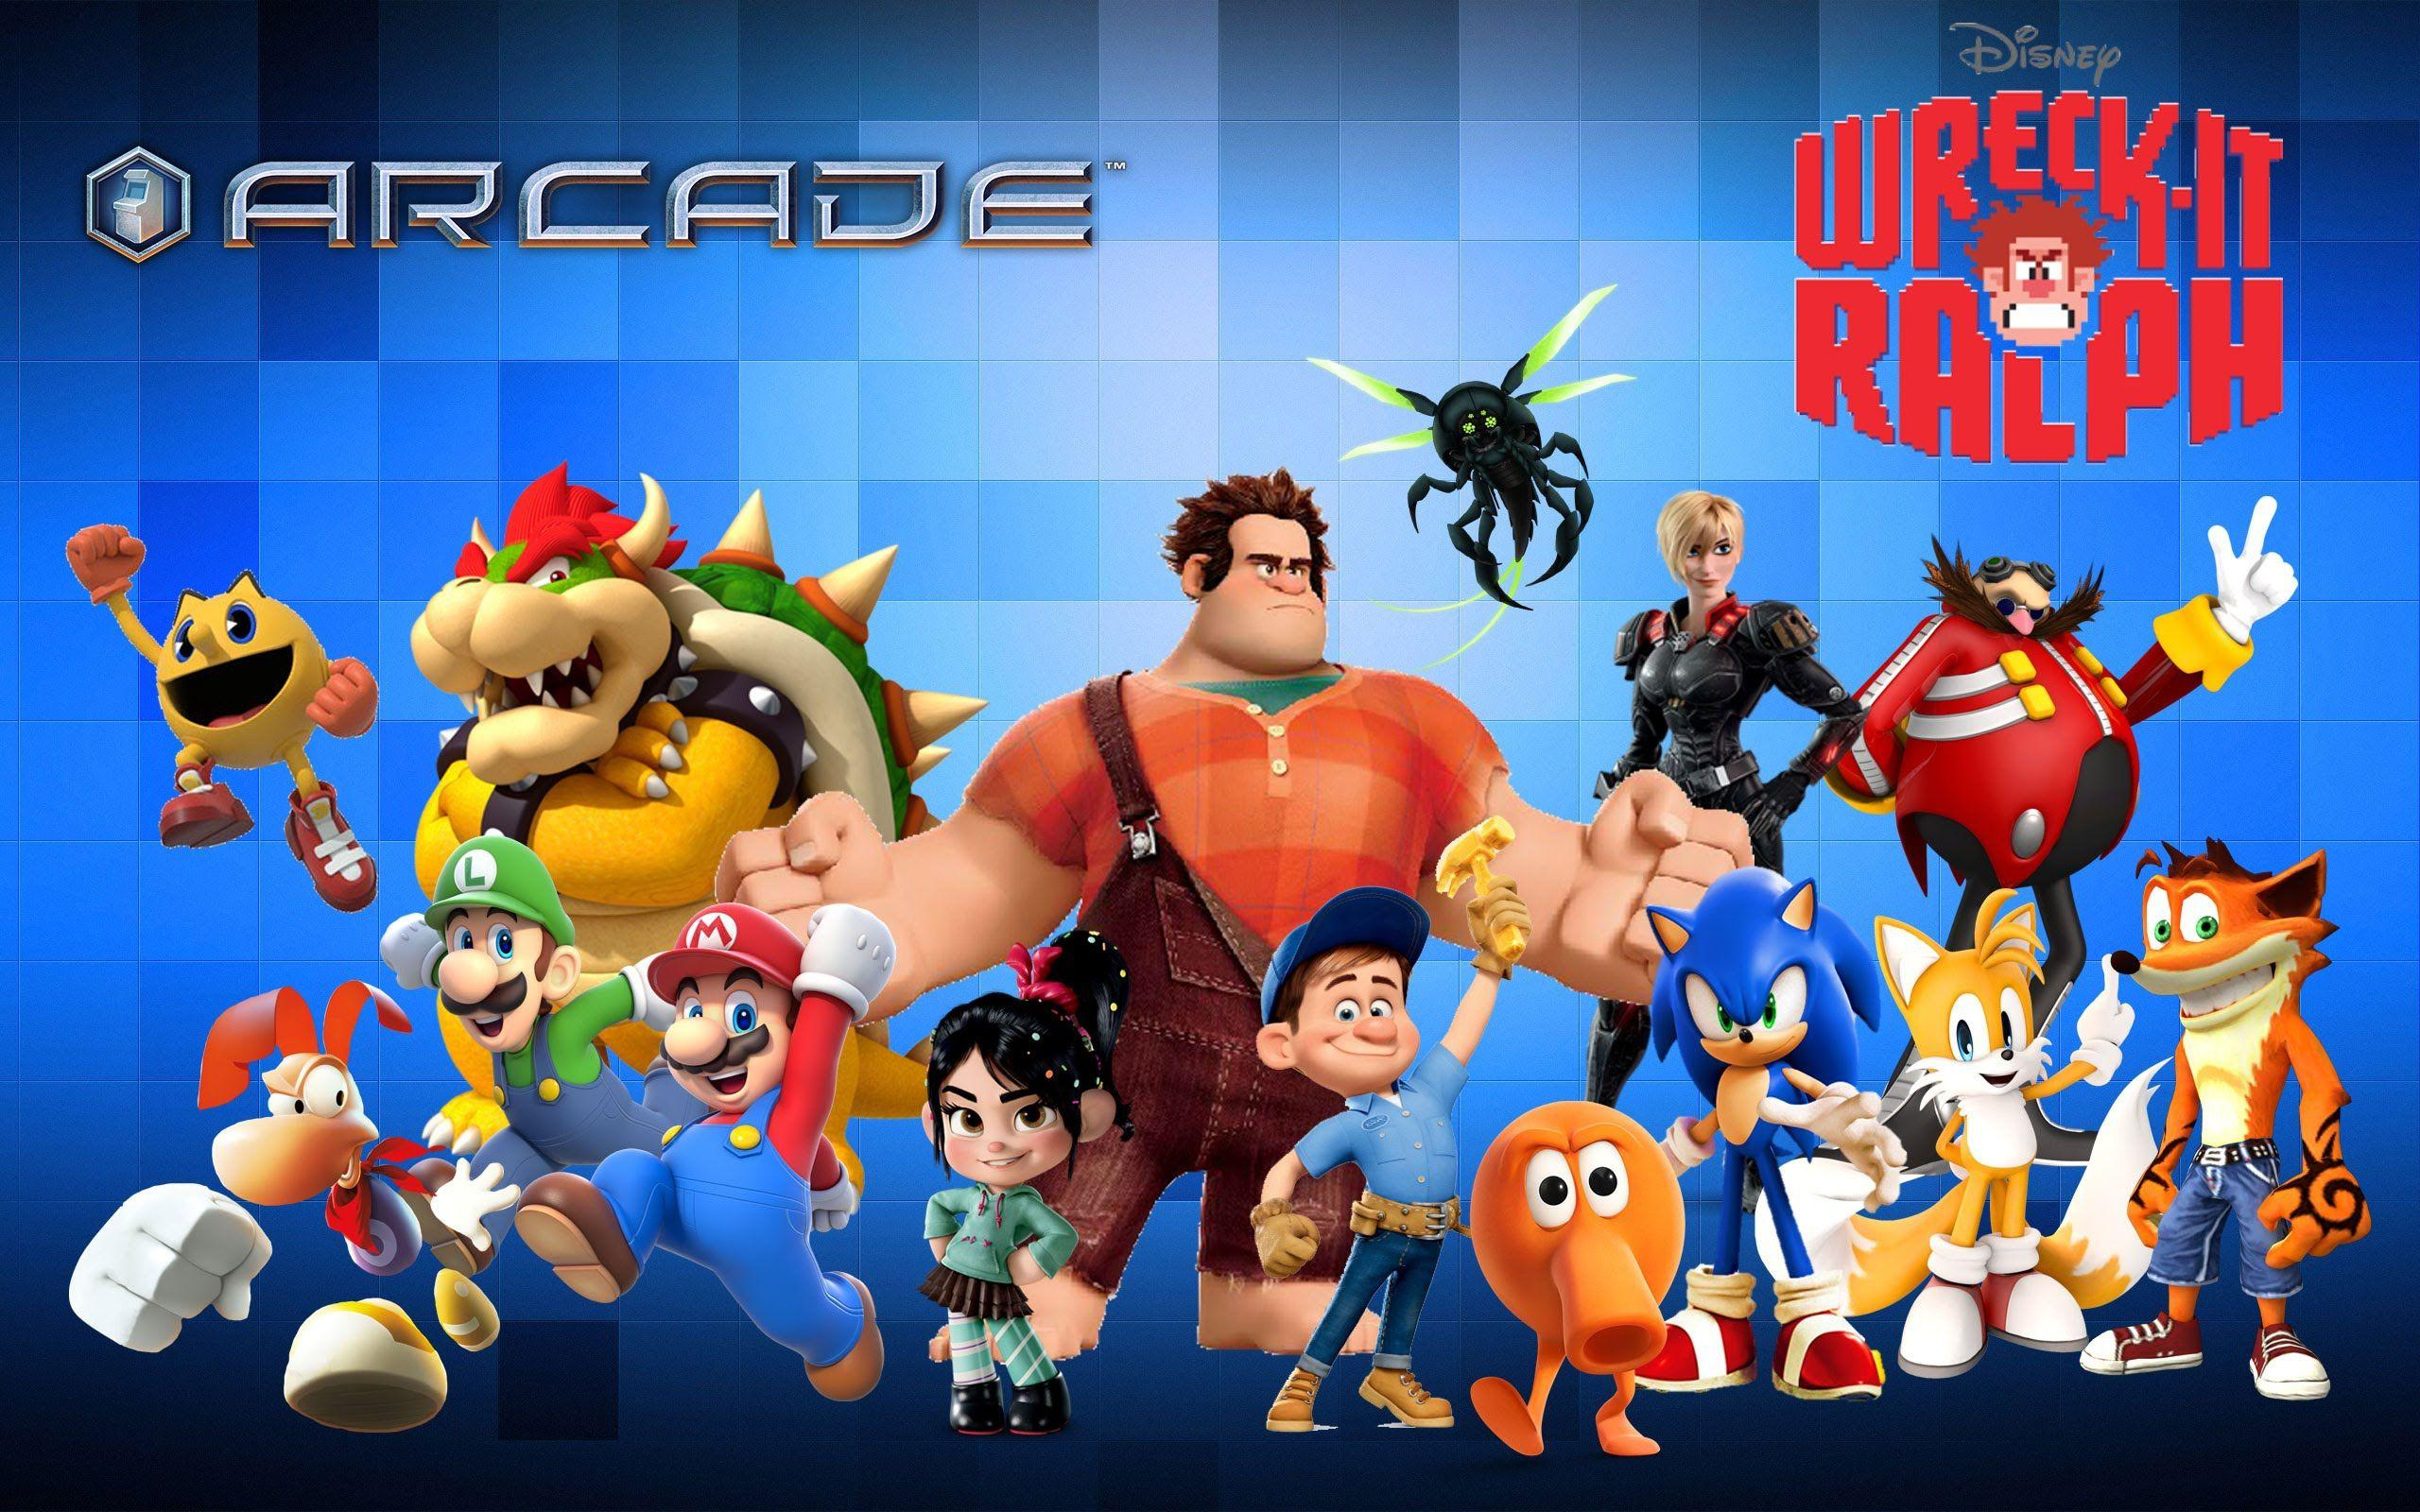 Wreck It Ralph Images Of Characters